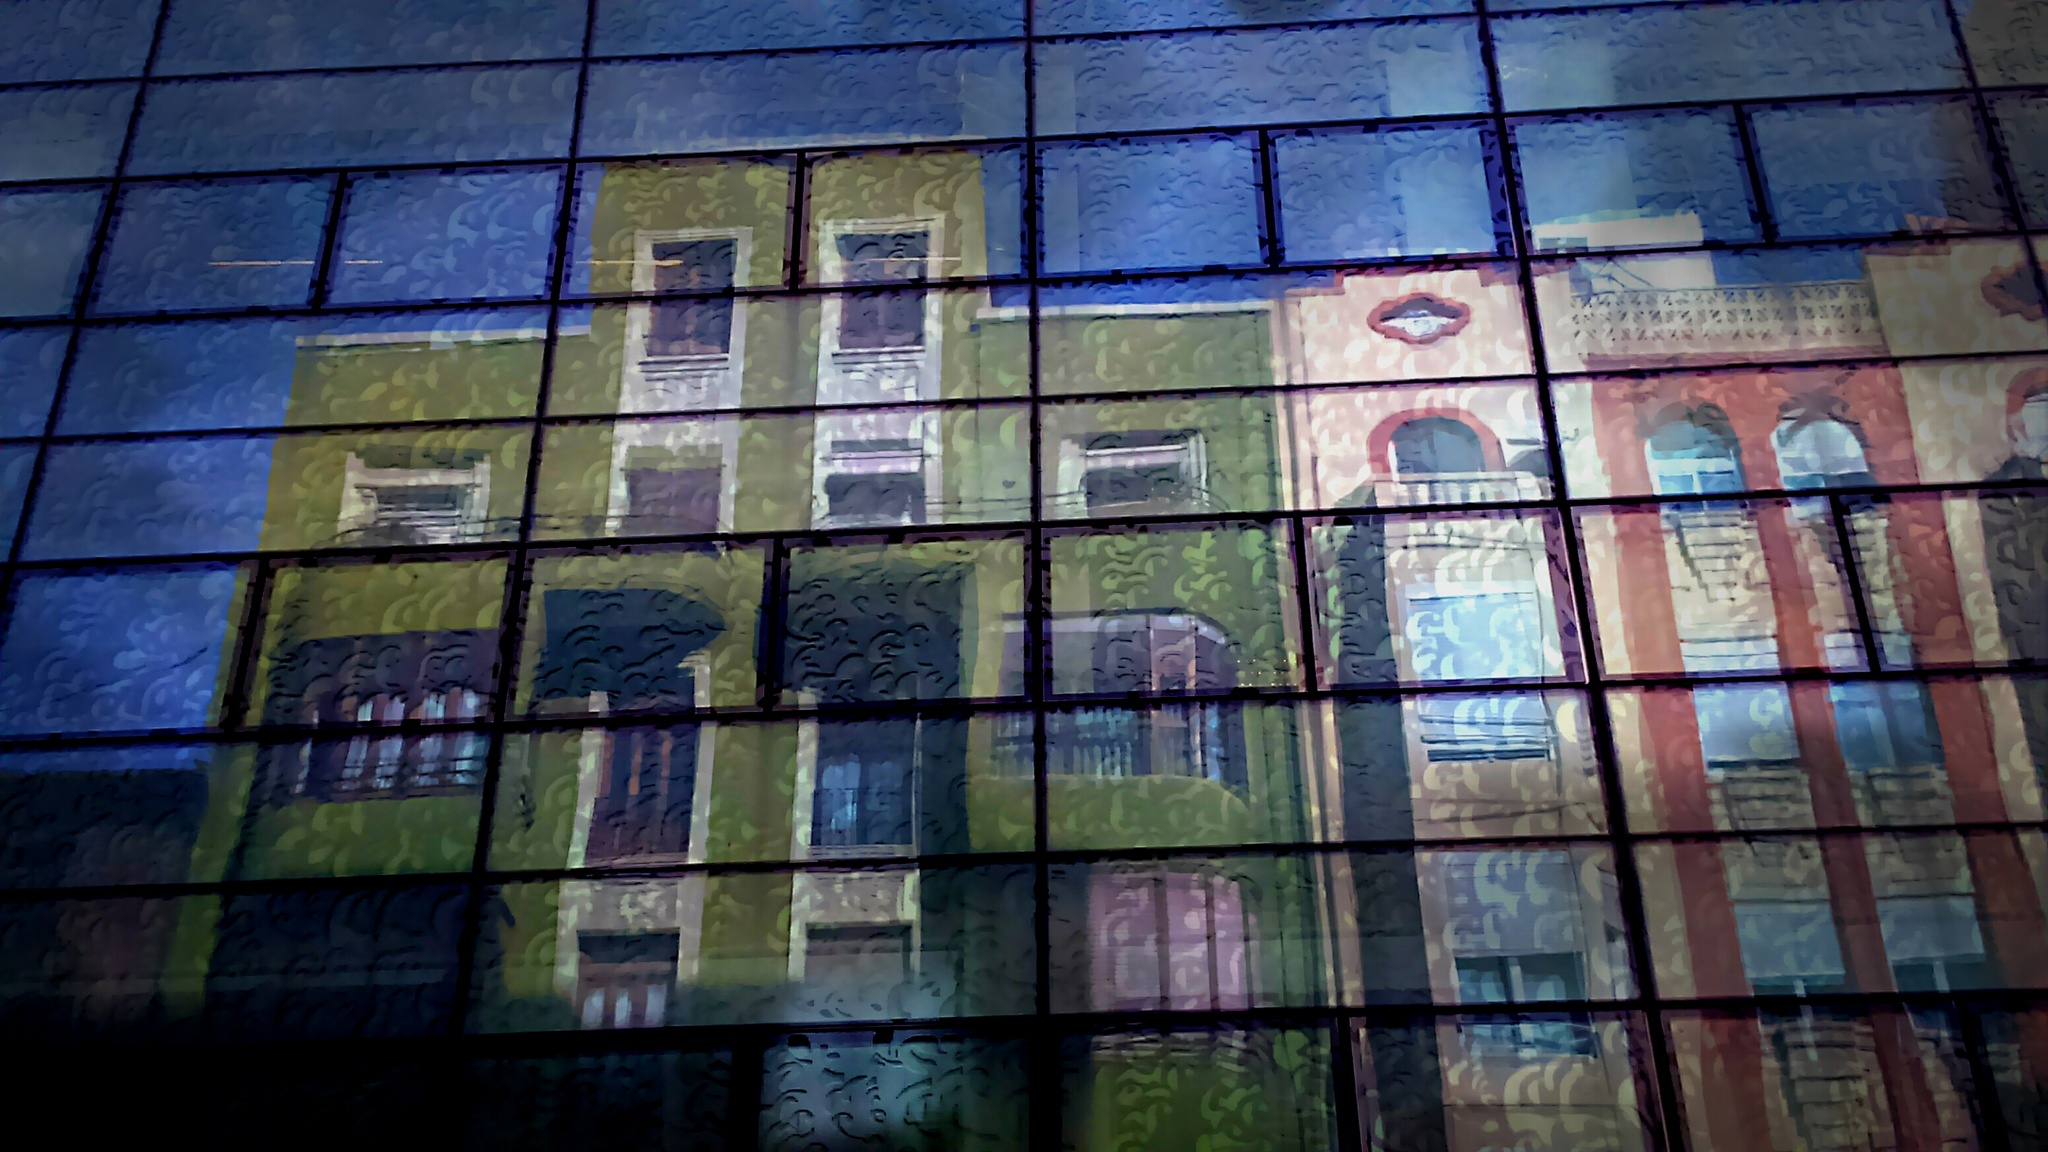 BUILDING REFLECTION  by vallesedu